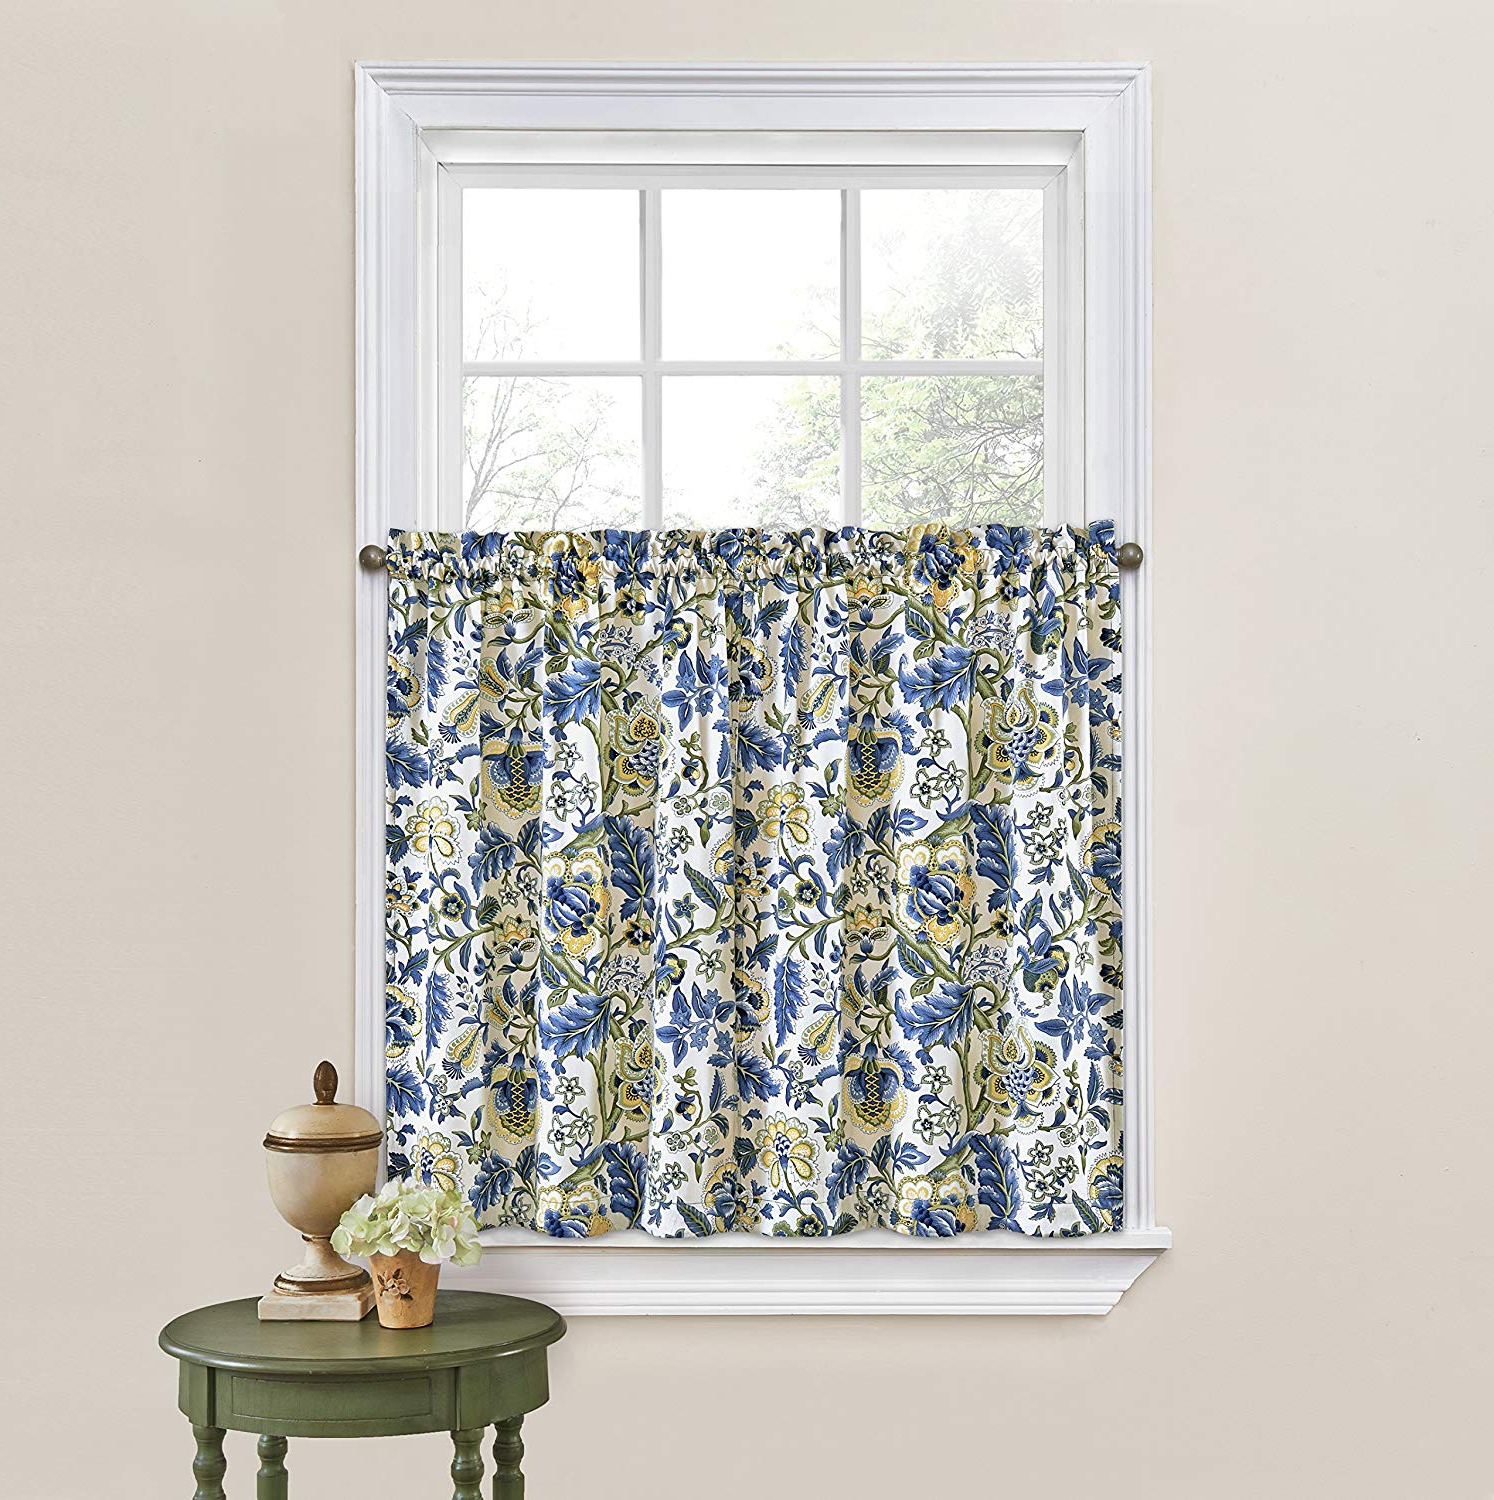 """Well Known Waverly Kitchen Curtains For Windows – Imperial Dress 52"""" X 36"""" Small Window Panel Tiers Privacy Window Treatment Pair Bathroom, Living Room, Intended For Imperial Flower Jacquard Tier And Valance Kitchen Curtain Sets (View 17 of 20)"""